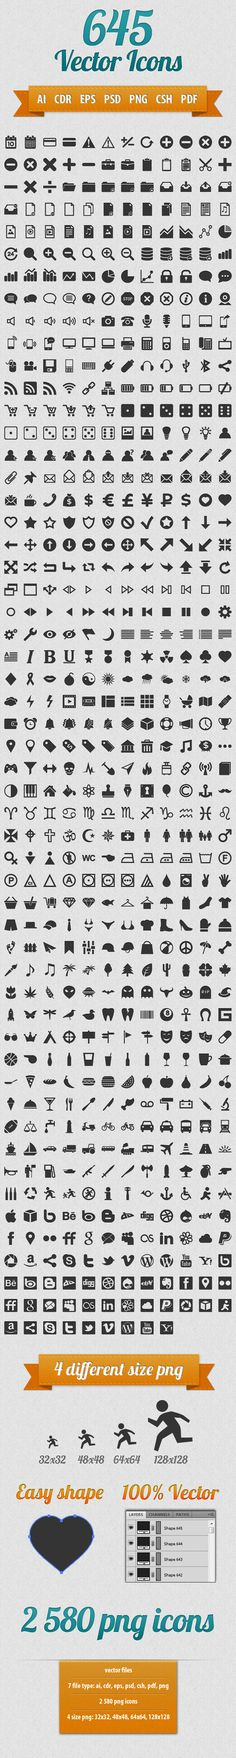 645 Vector Icons Pack.